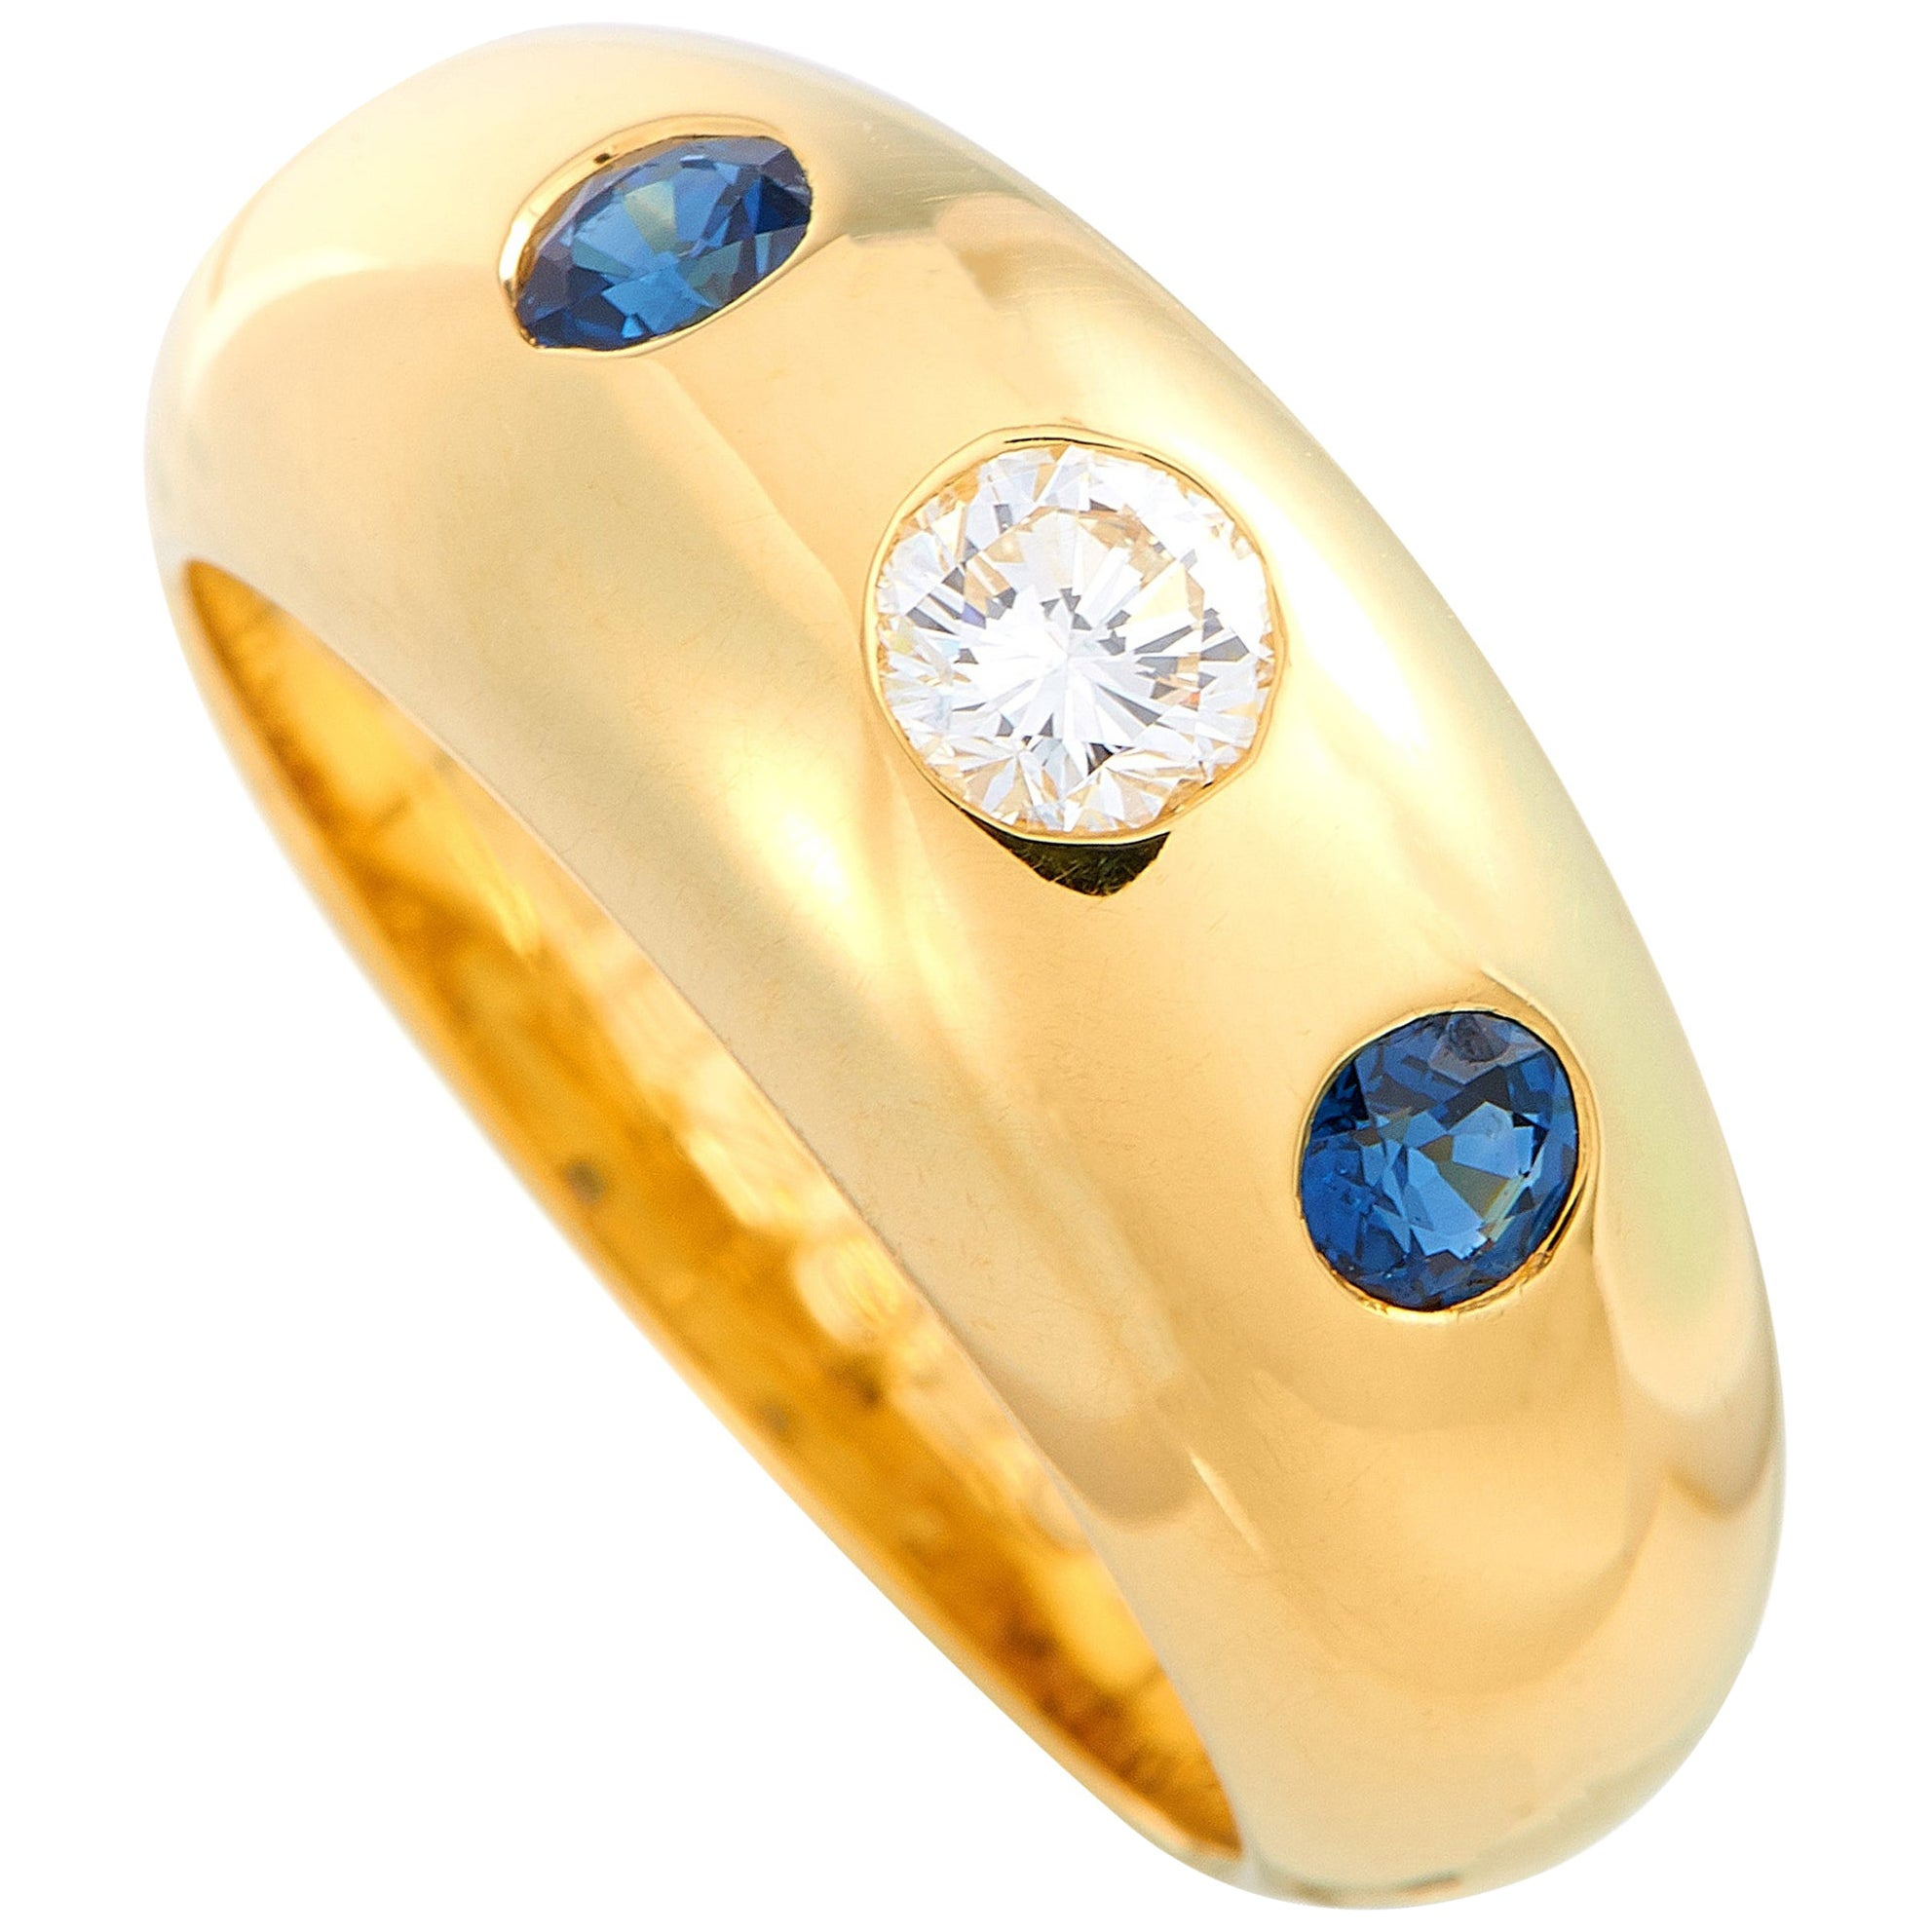 Cartier 0.25 Carat Diamond and Sapphire Yellow Gold Ring